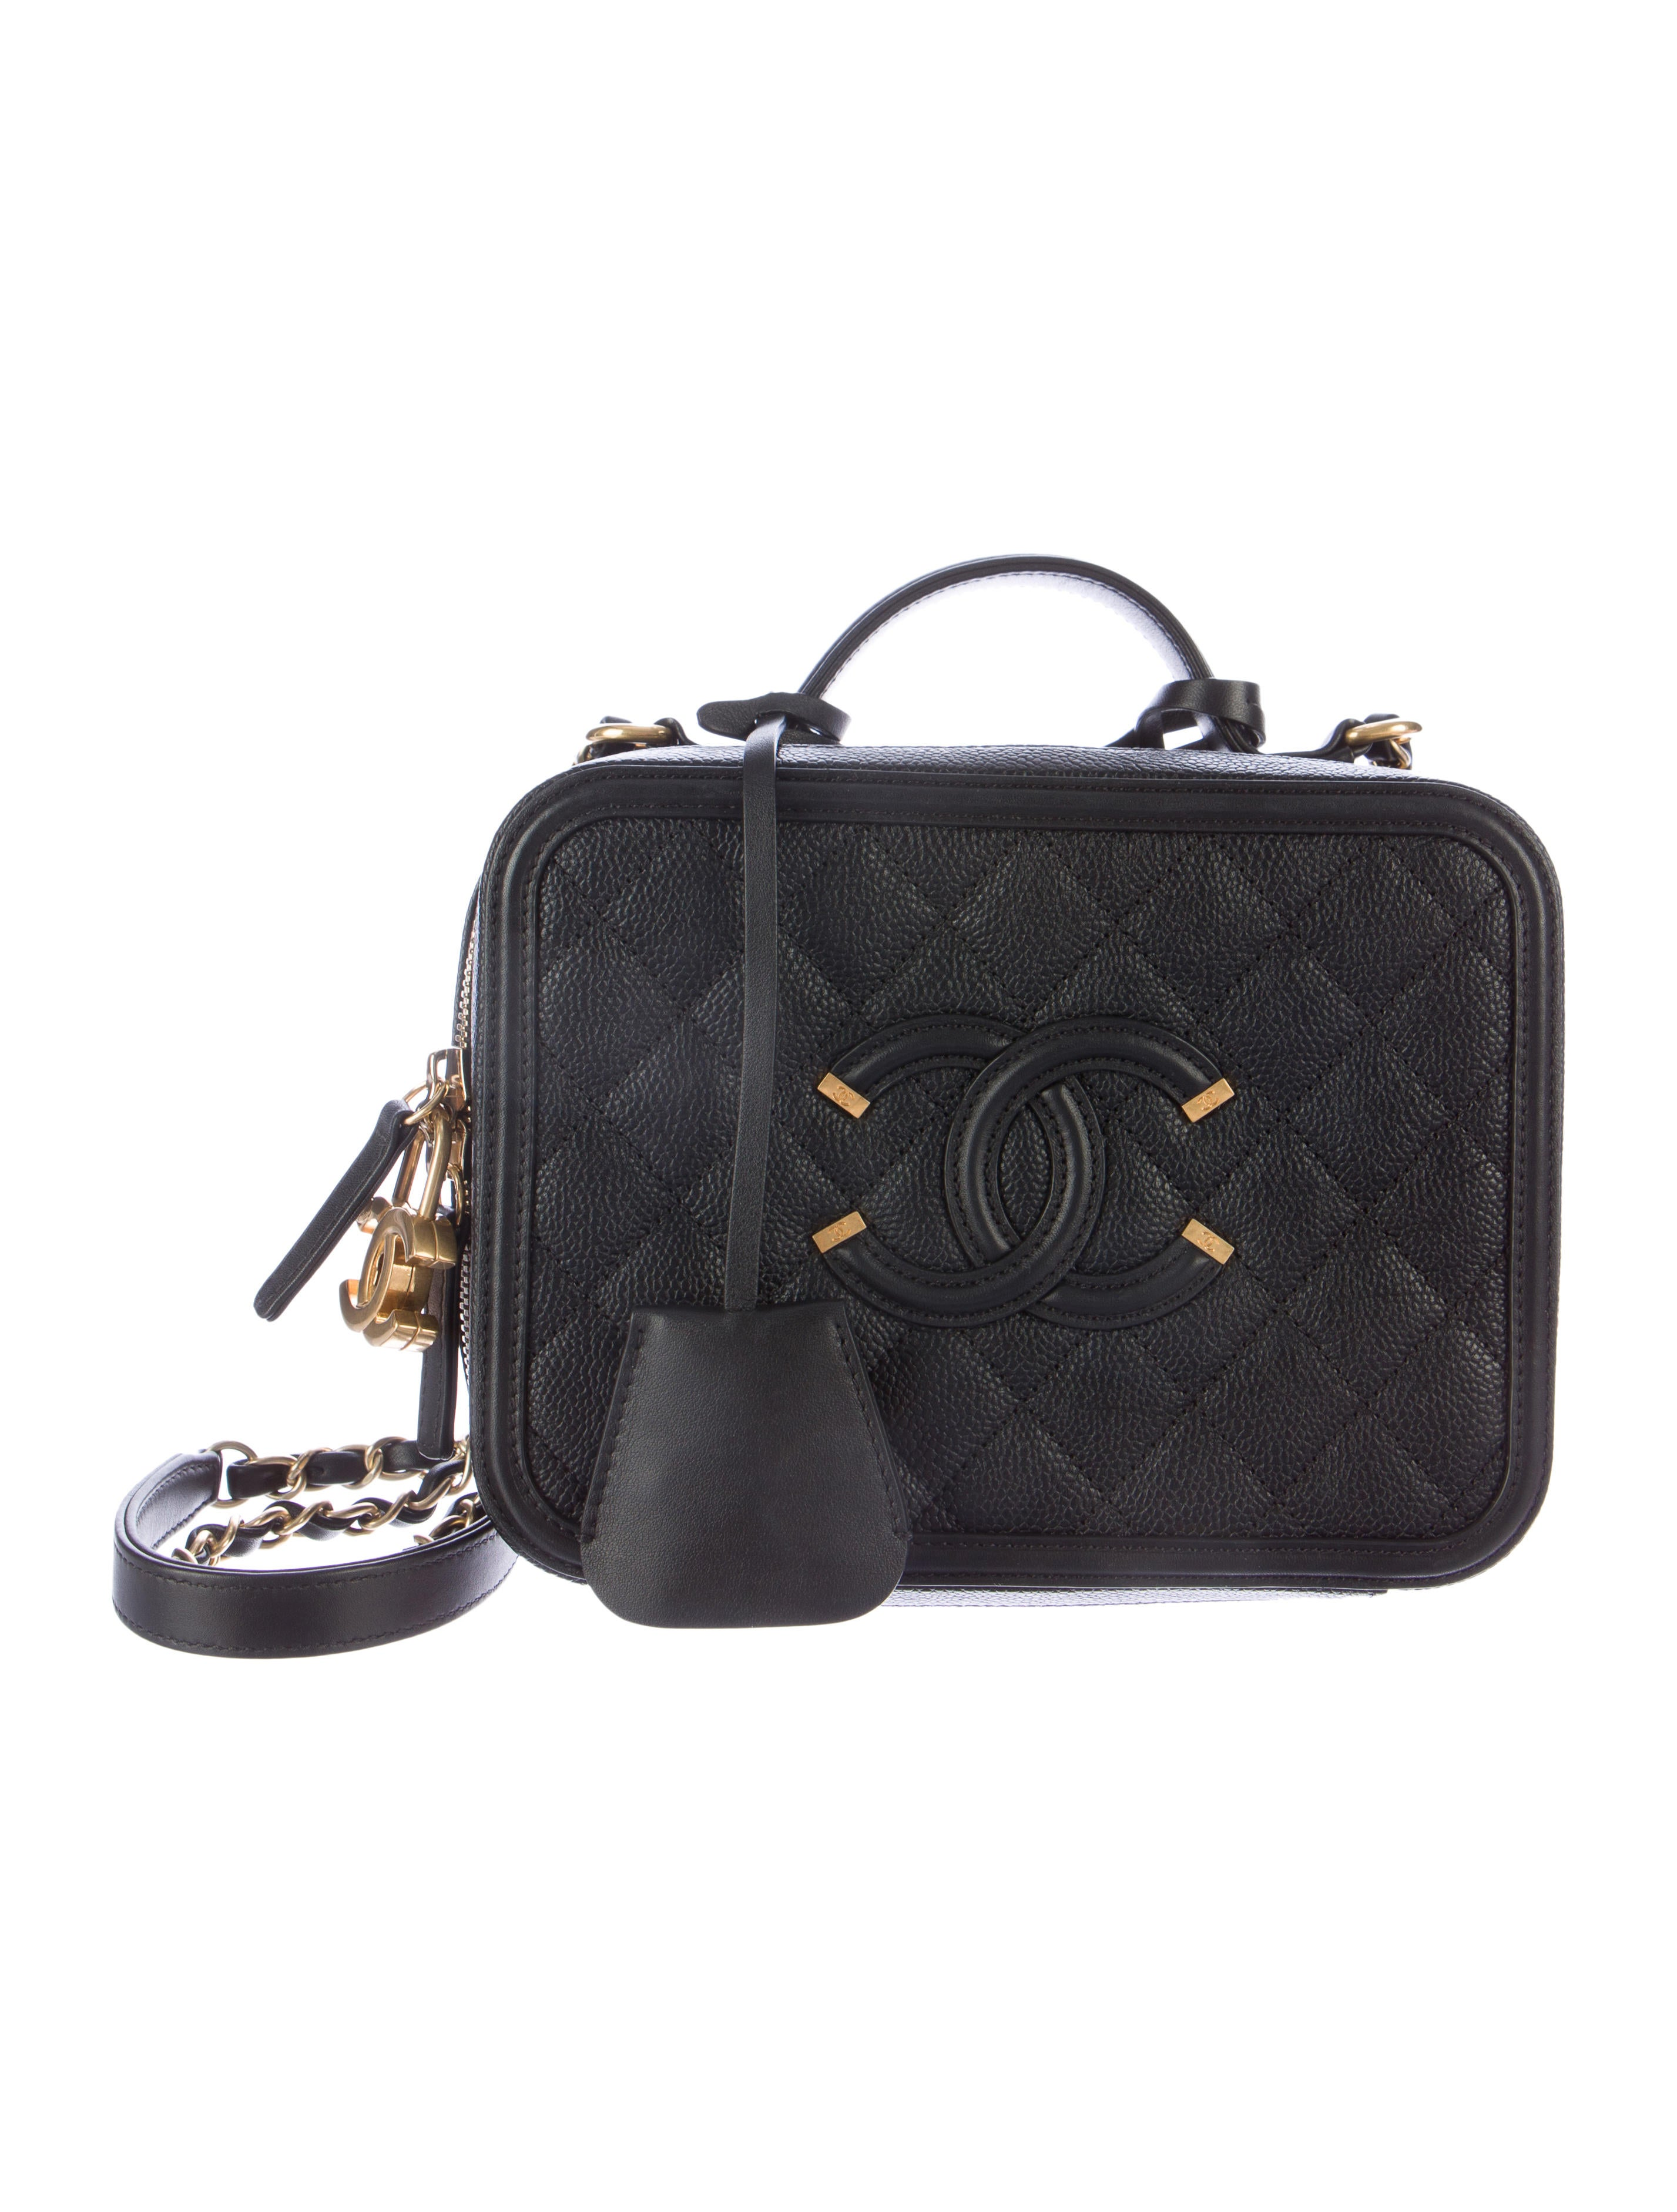 f55a0d414a7cd4 Chanel CC Filigree Vanity Case Bag - Handbags - CHA113804 | The RealReal